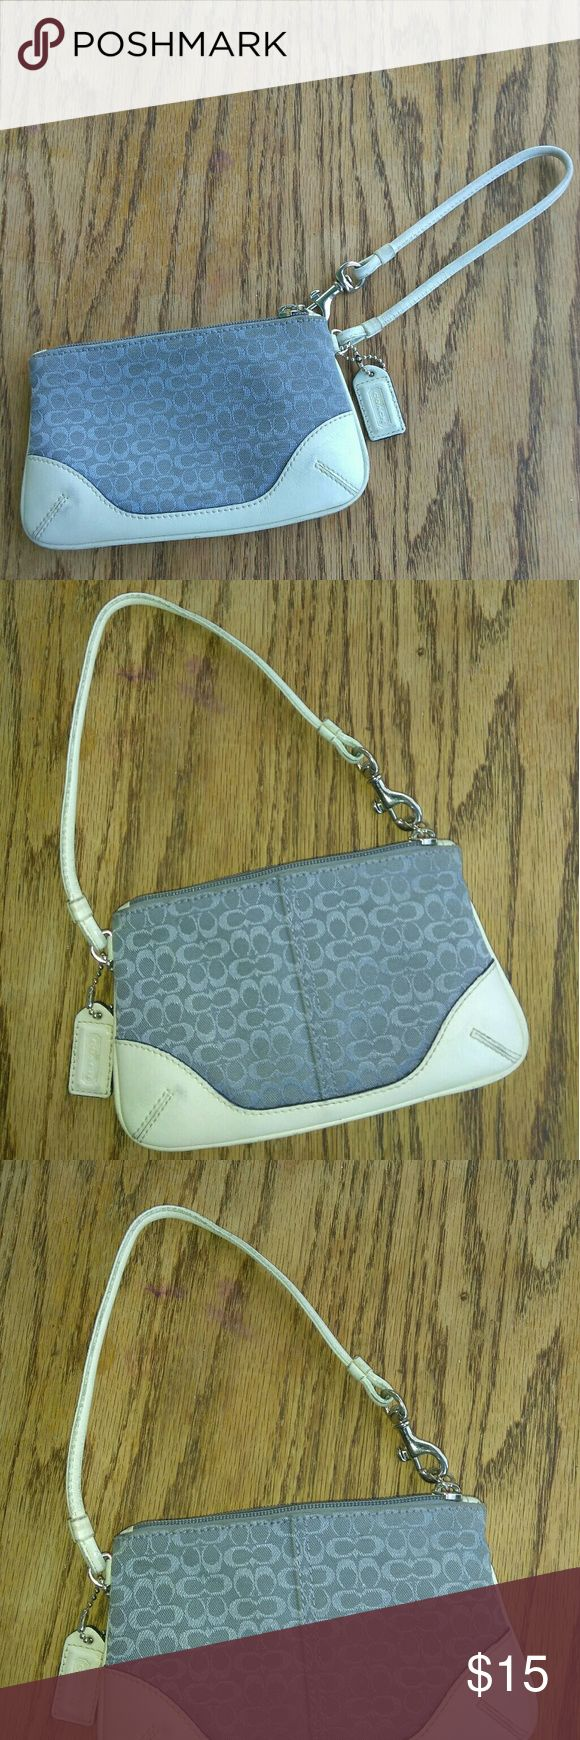 """Coach wristlet blue and white Coach wristlet blue and white Height 4"""" Length 6.5 Coach Bags Clutches & Wristlets"""